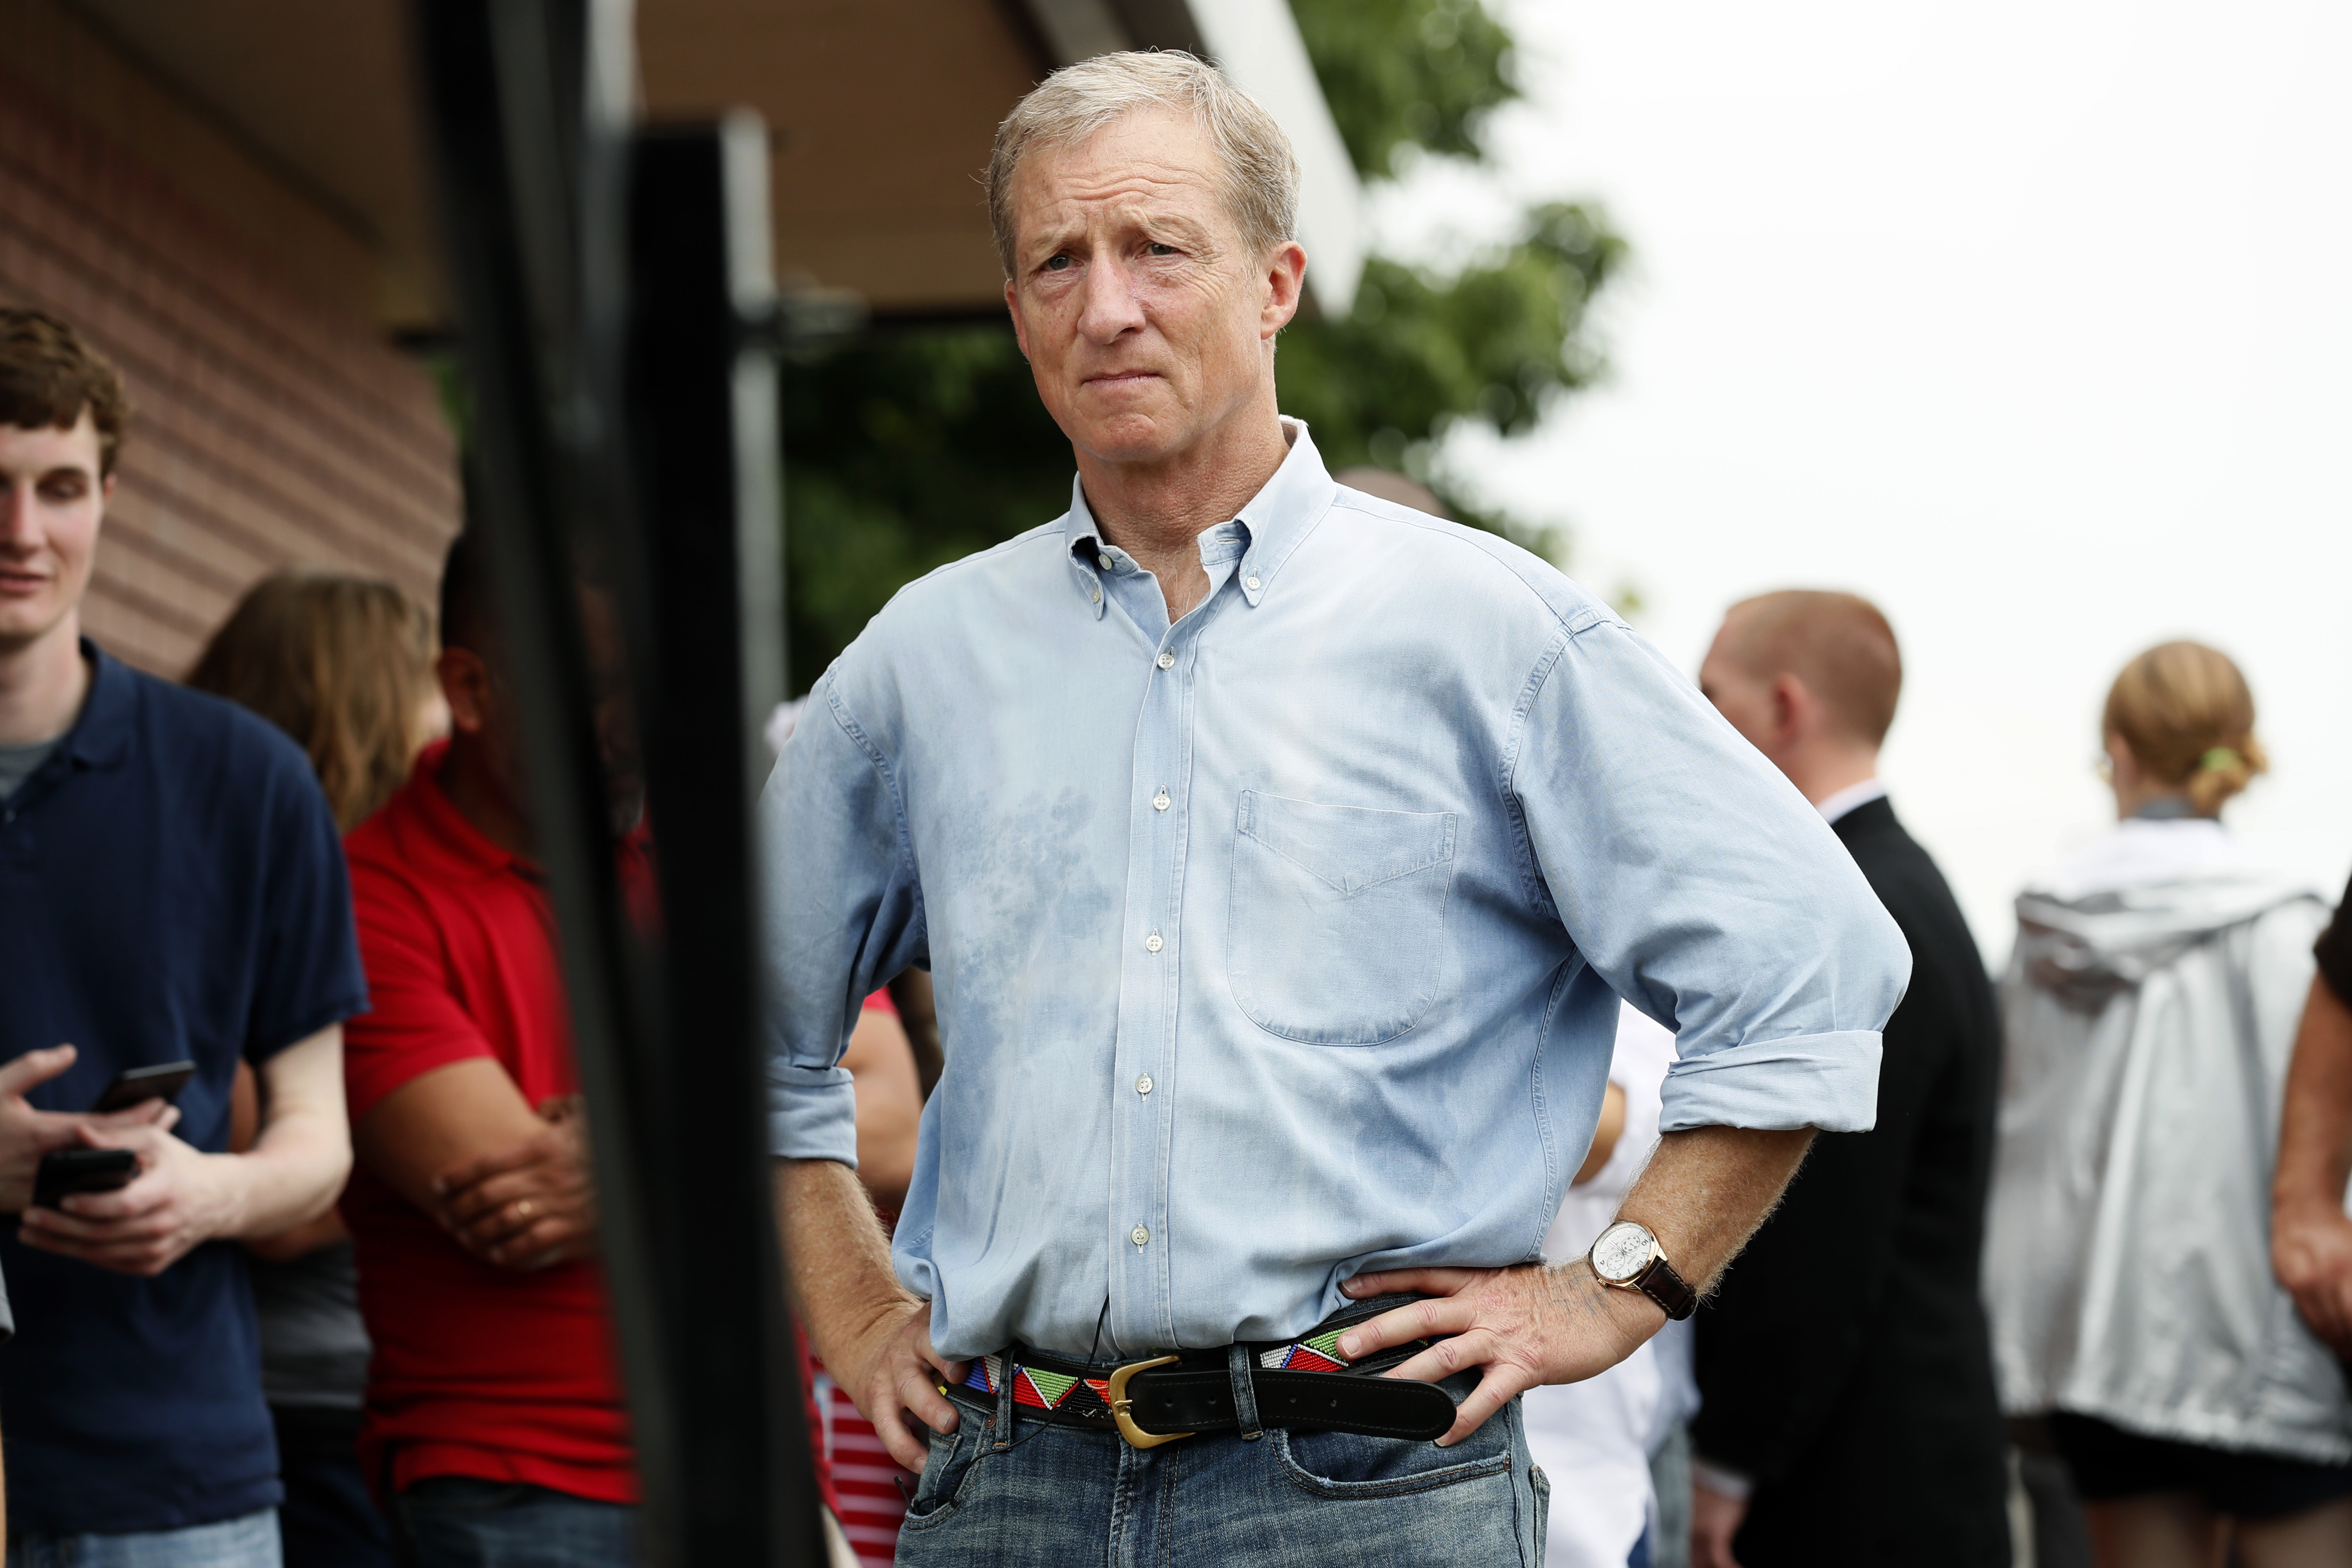 Tom Steyer leaves campaign trail for San Francisco jury duty